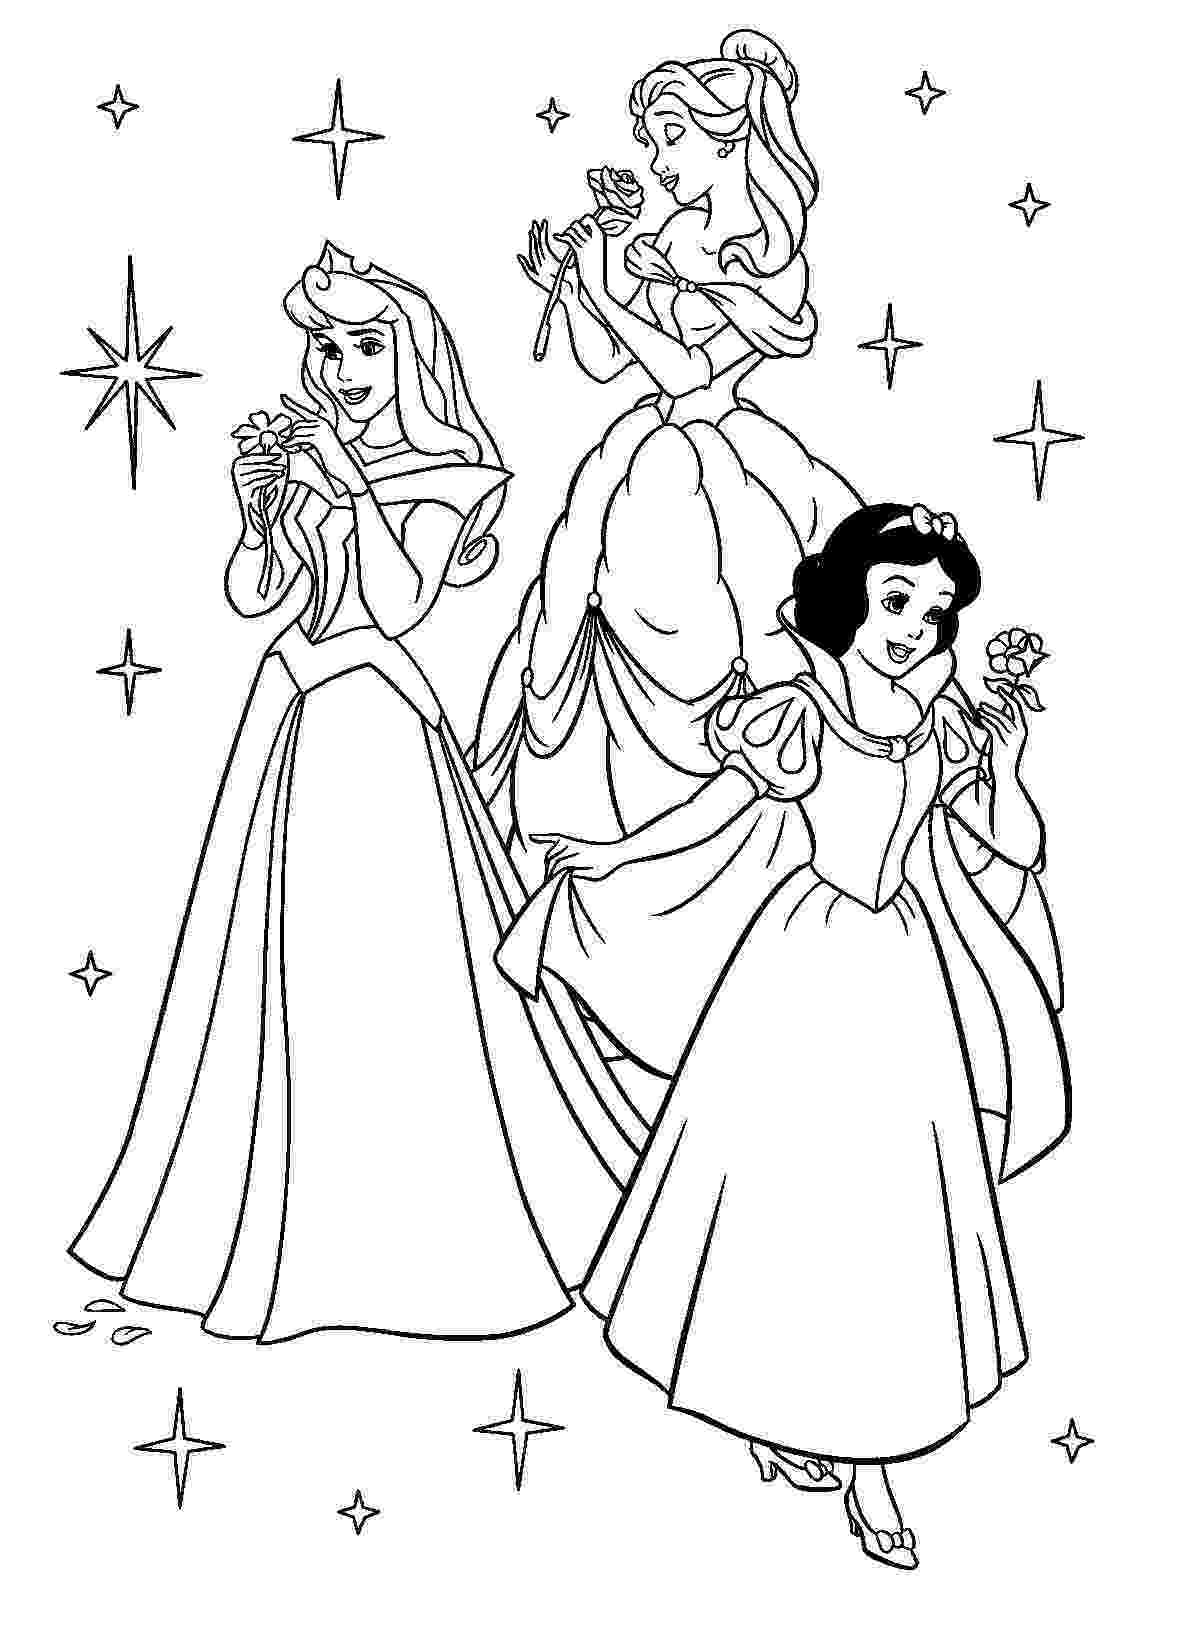 cinderella a4 colouring pages free printable cinderella coloring pages for kids cool2bkids colouring pages a4 cinderella